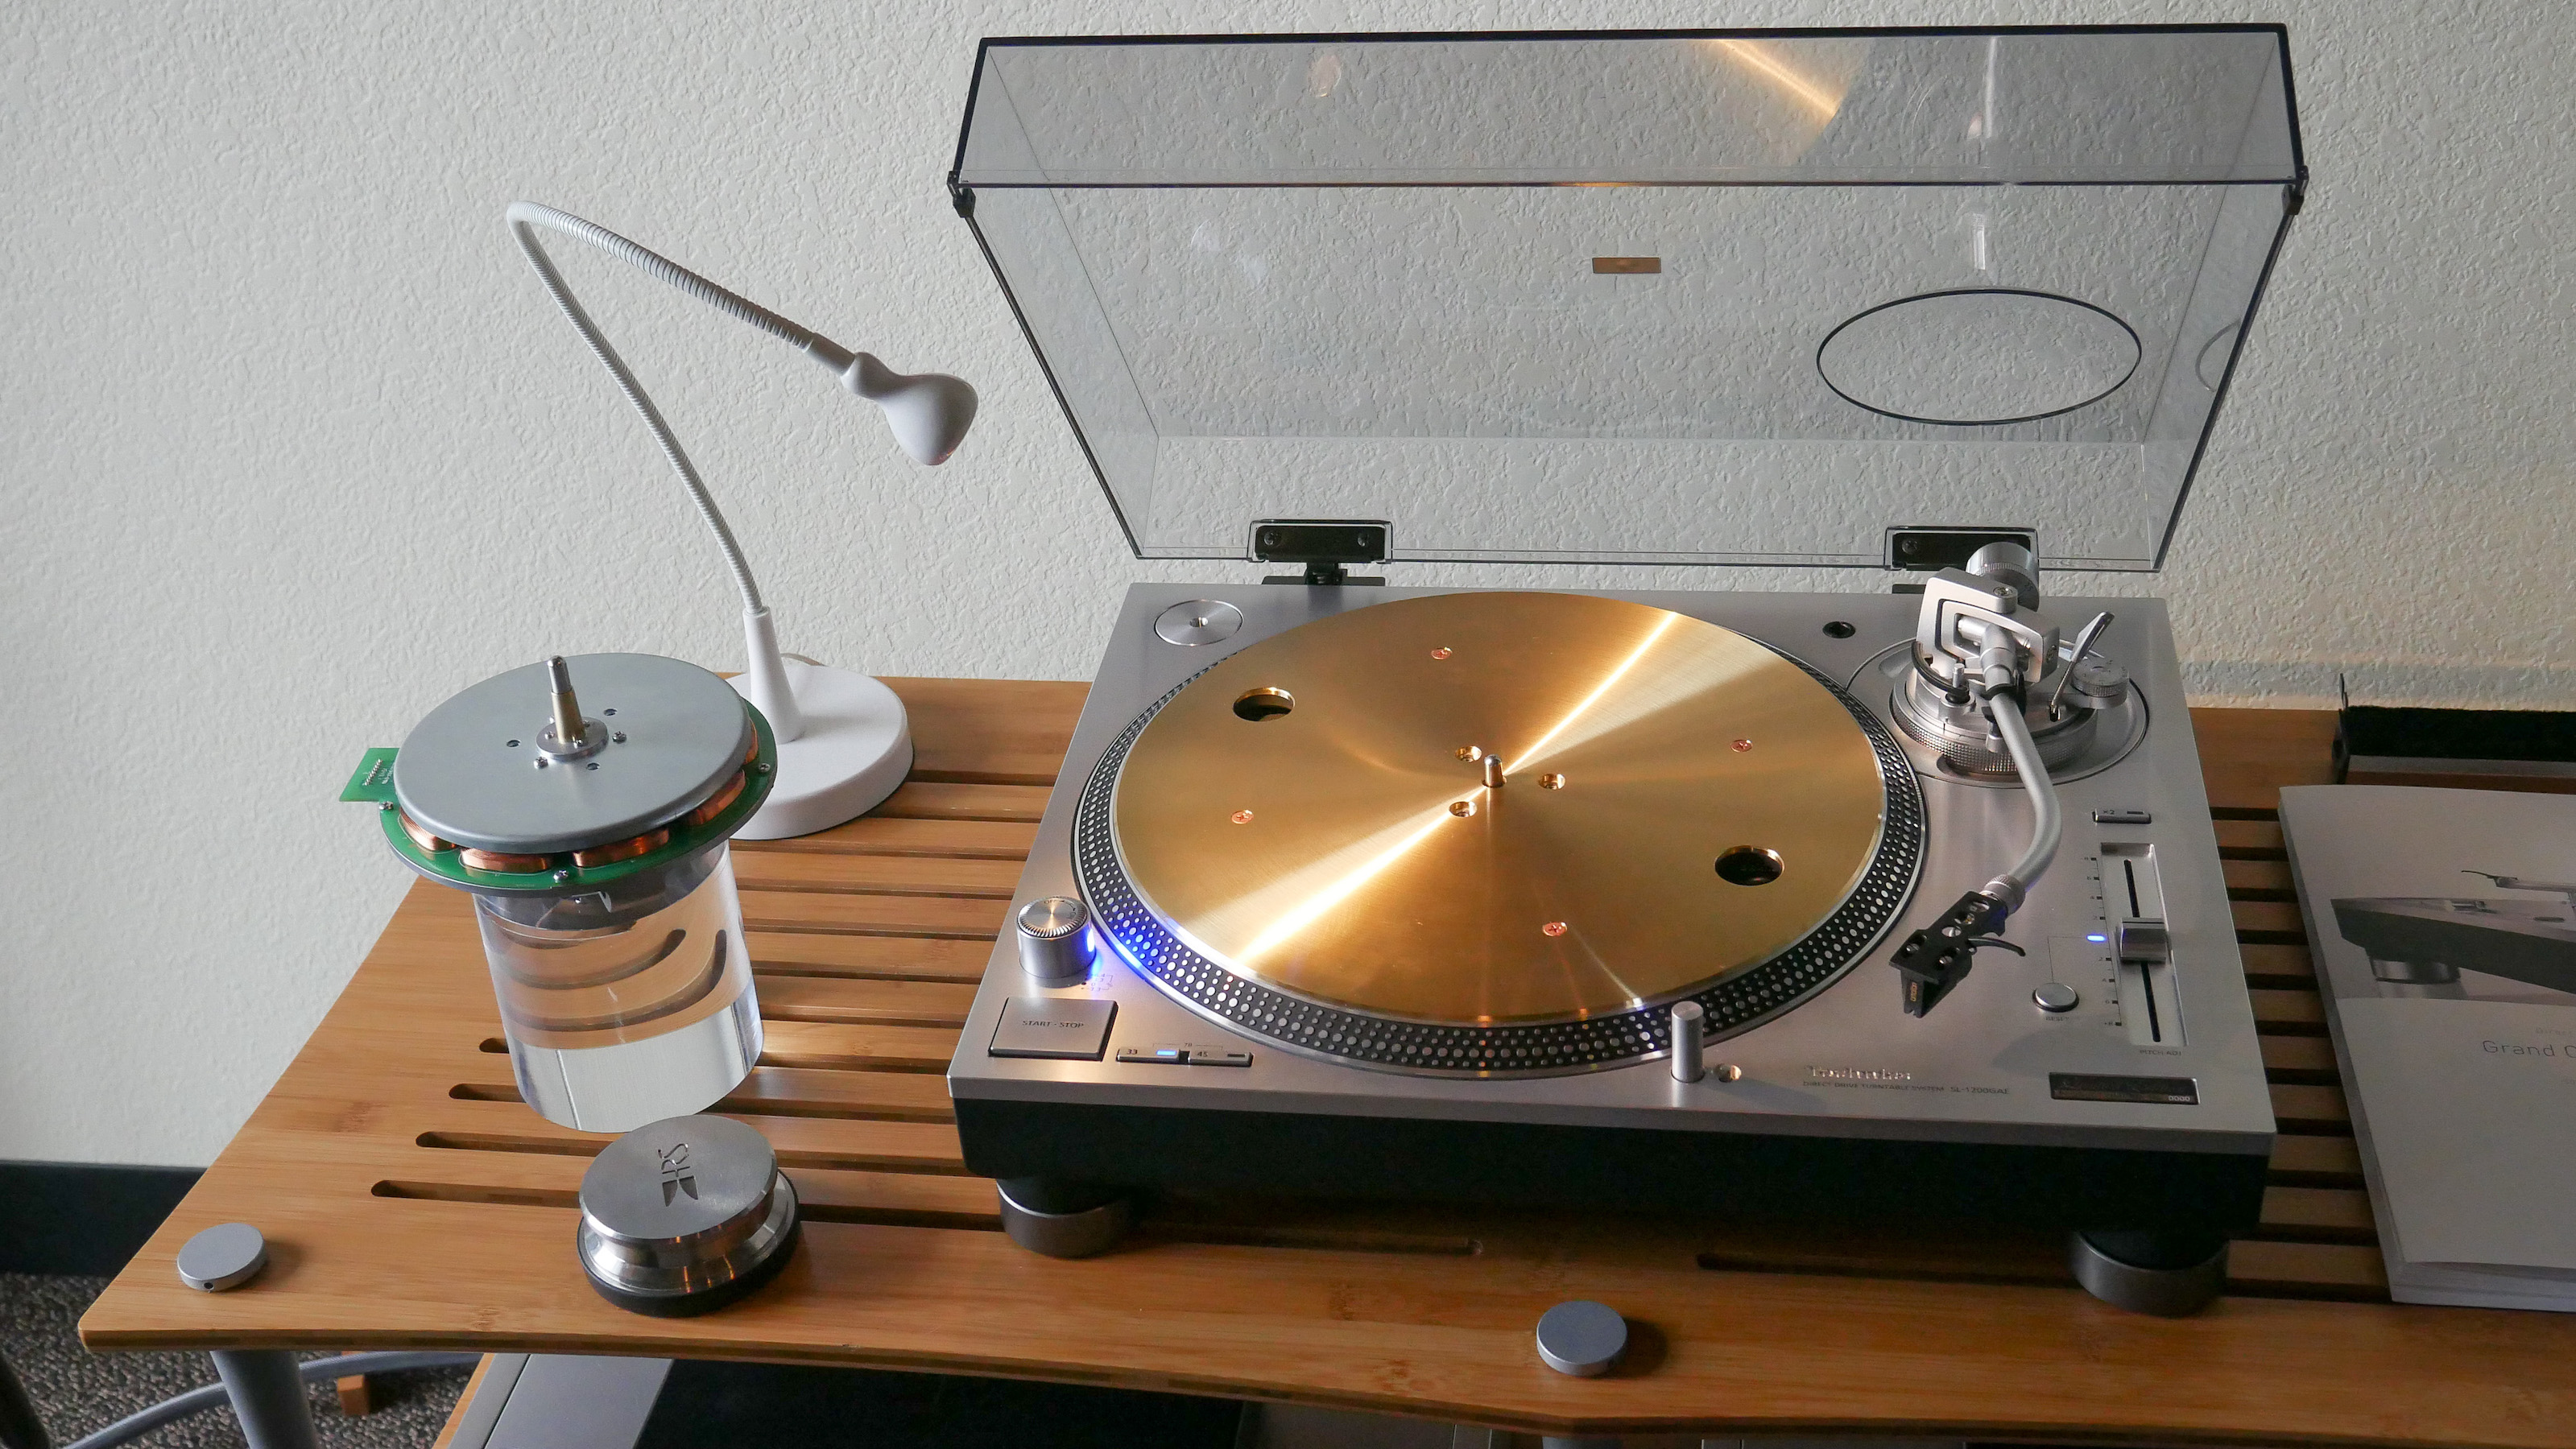 http://audiophilereview.com/images/Tec3.jpg